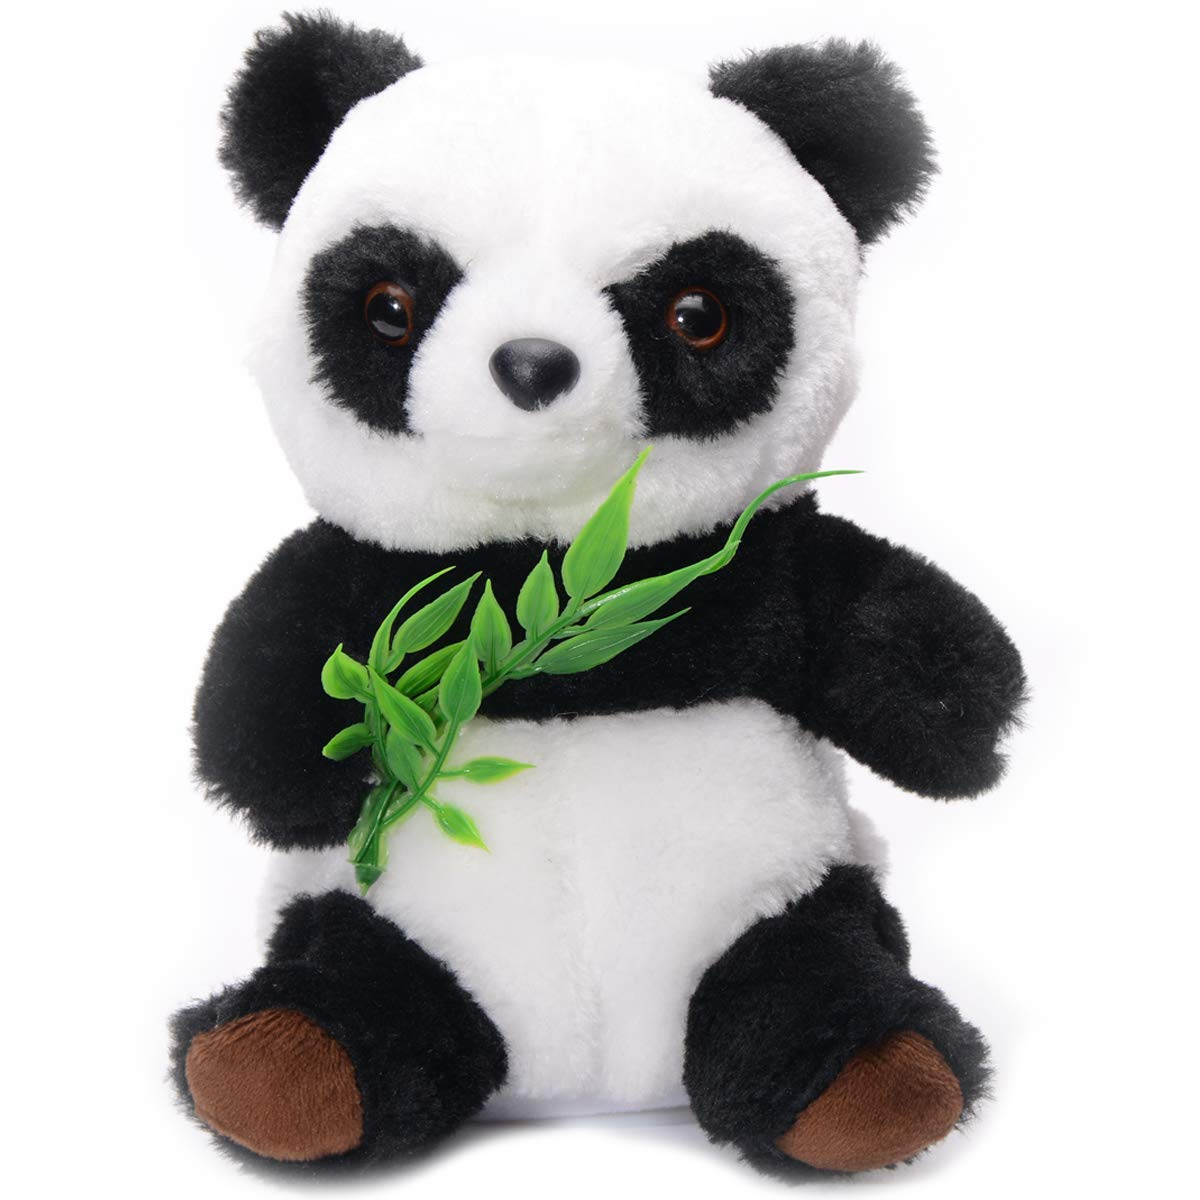 Talking Panda Cute Fluffy Mimicry Toy Repeats What You Say Electronic Pet for Kids/Toddlers/Teens Interactive Toy Educational Gift for Birthday Party/Christmas Plush Animated Animal Talking Hamster